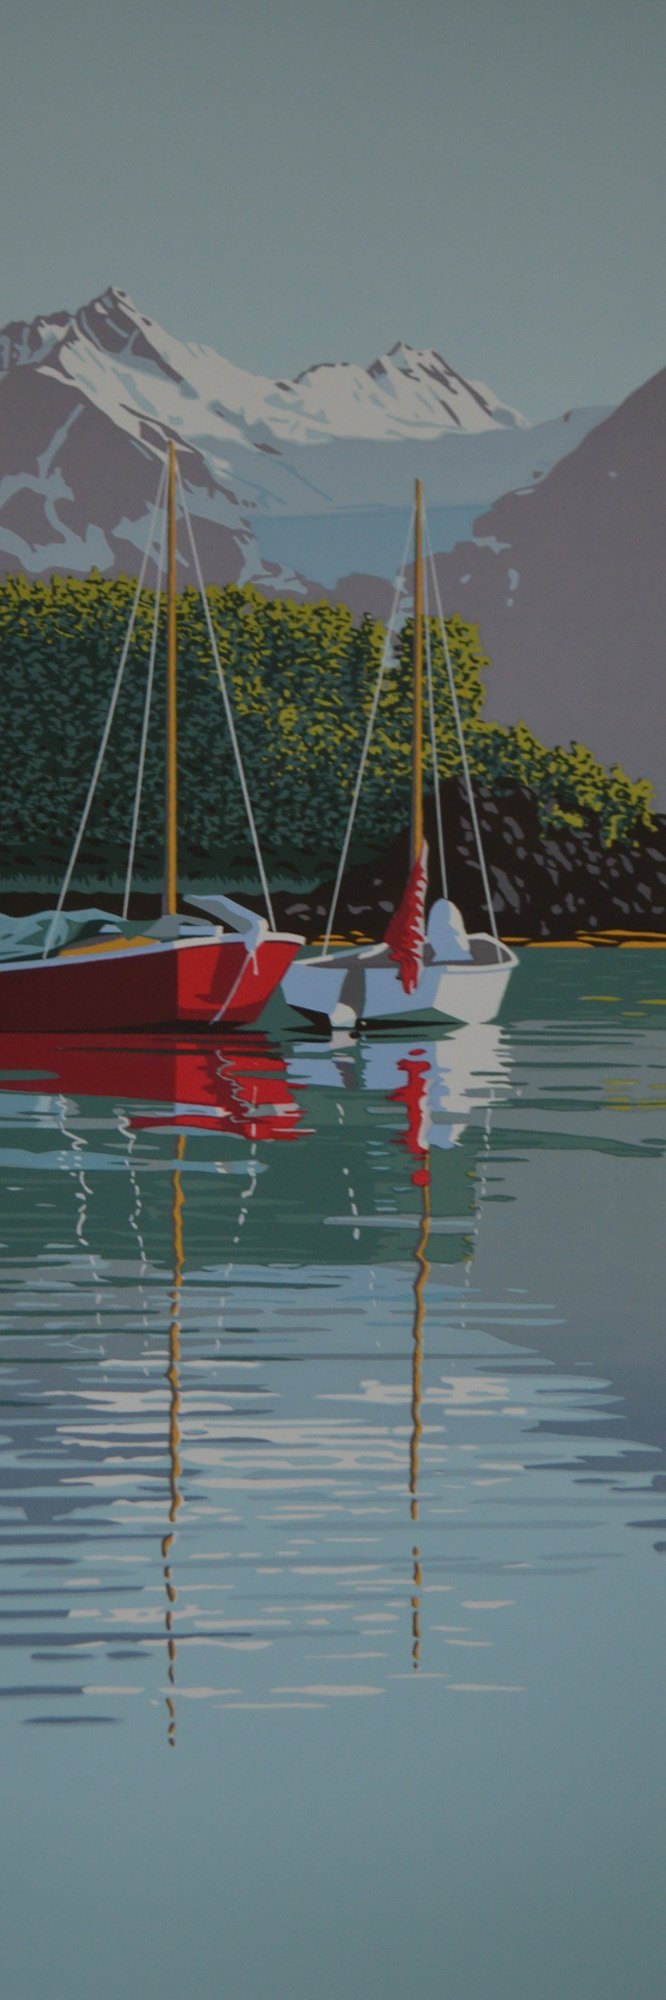 Donna Catotti   Sailboats in Paradise Cove S erigraph (silkscreen) 18 x 6 inches, APS 208G